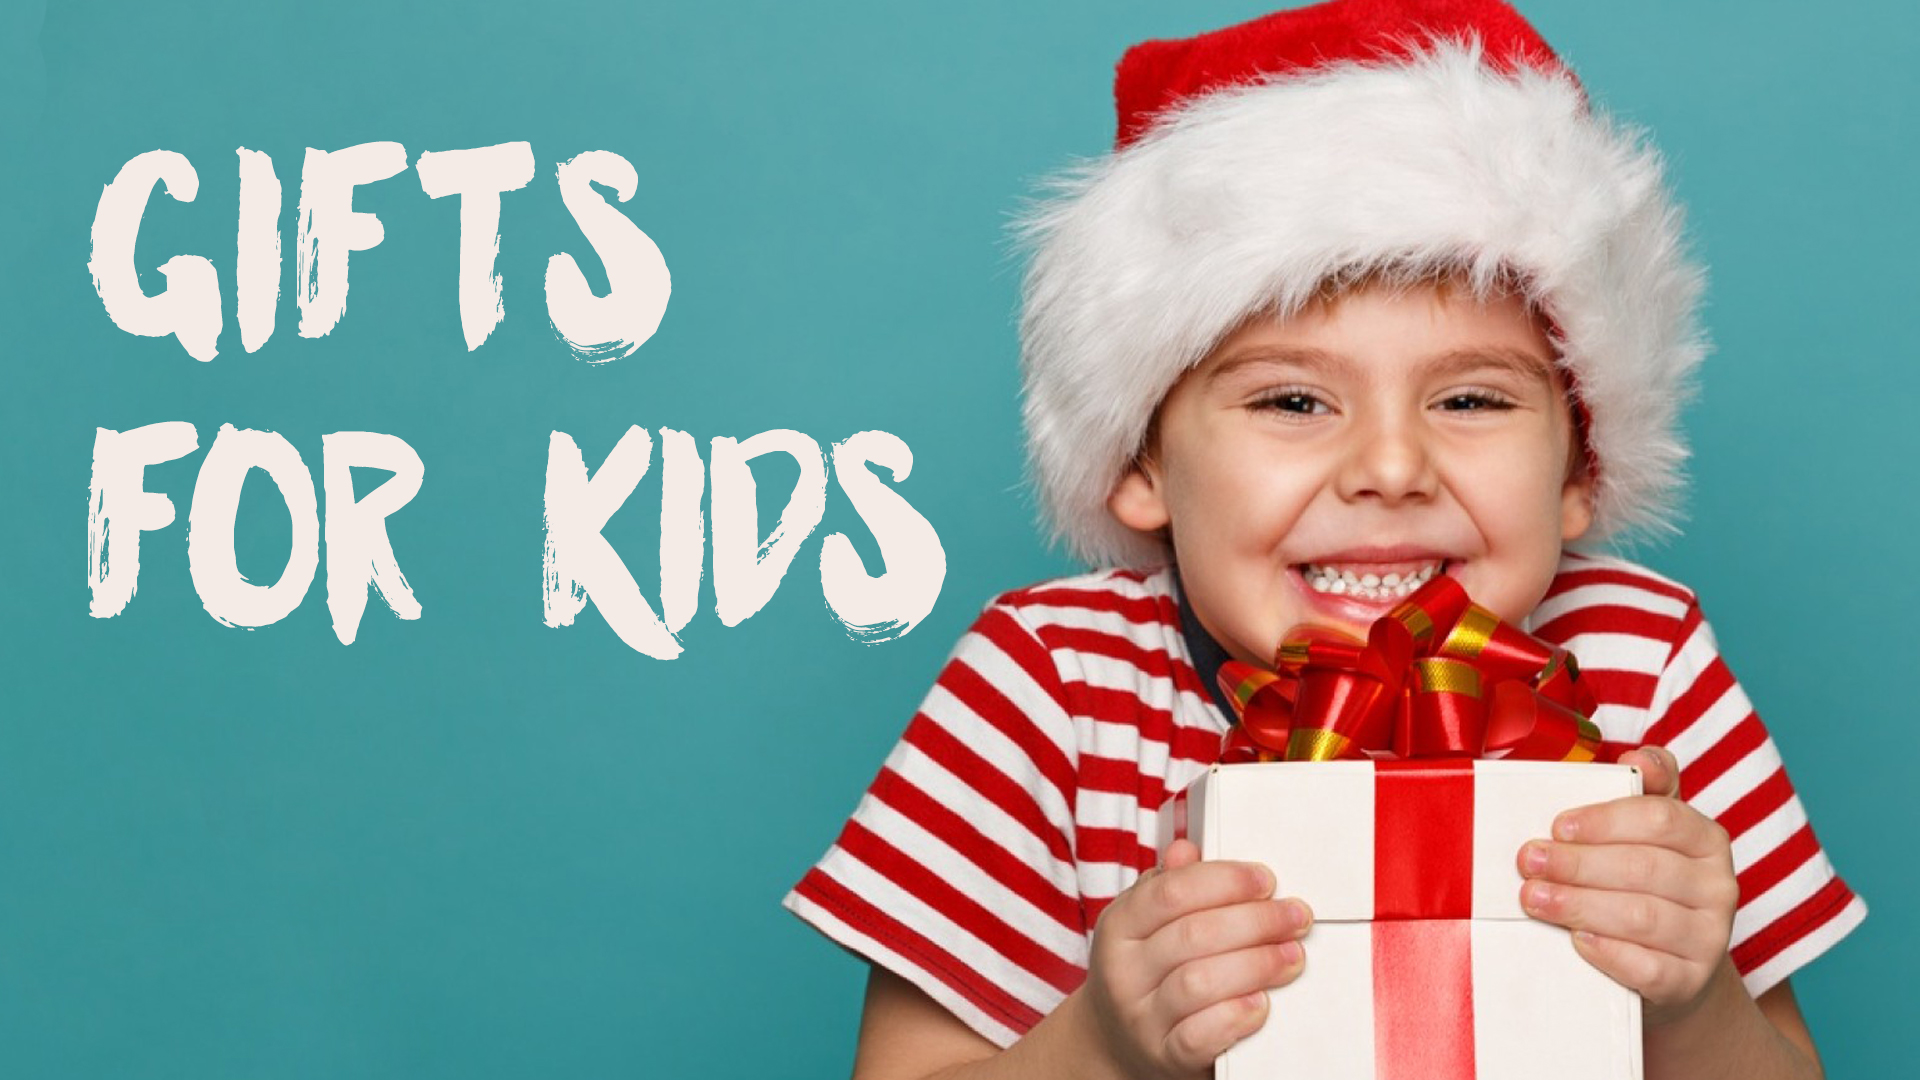 Gifts for kids 1